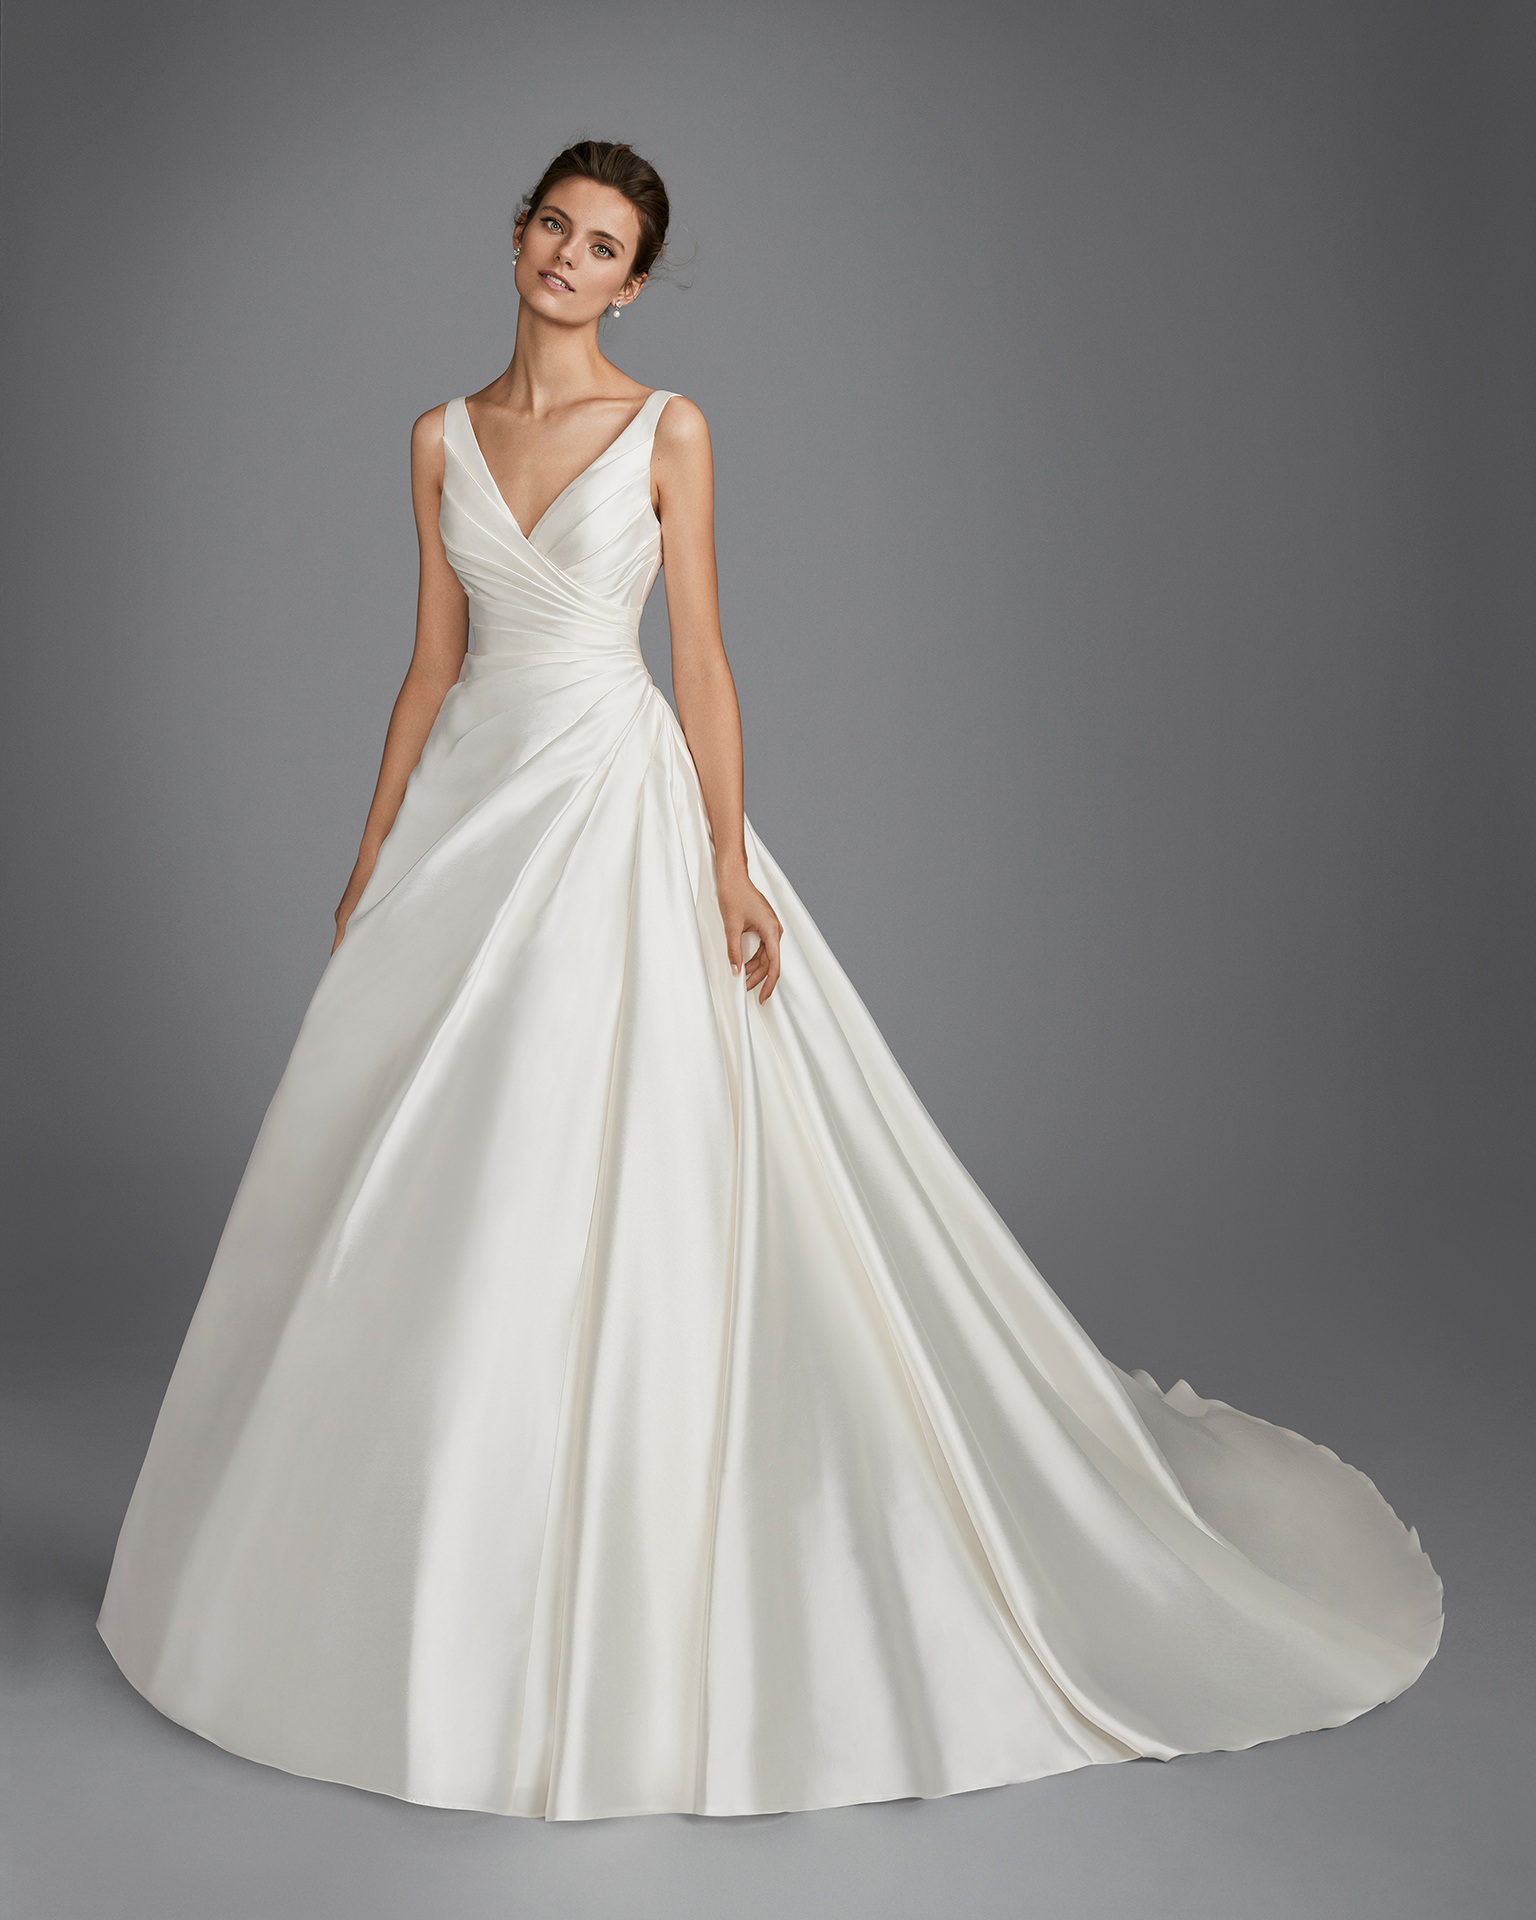 Classic-style mikado wedding dress with V-neckline and gathered side.